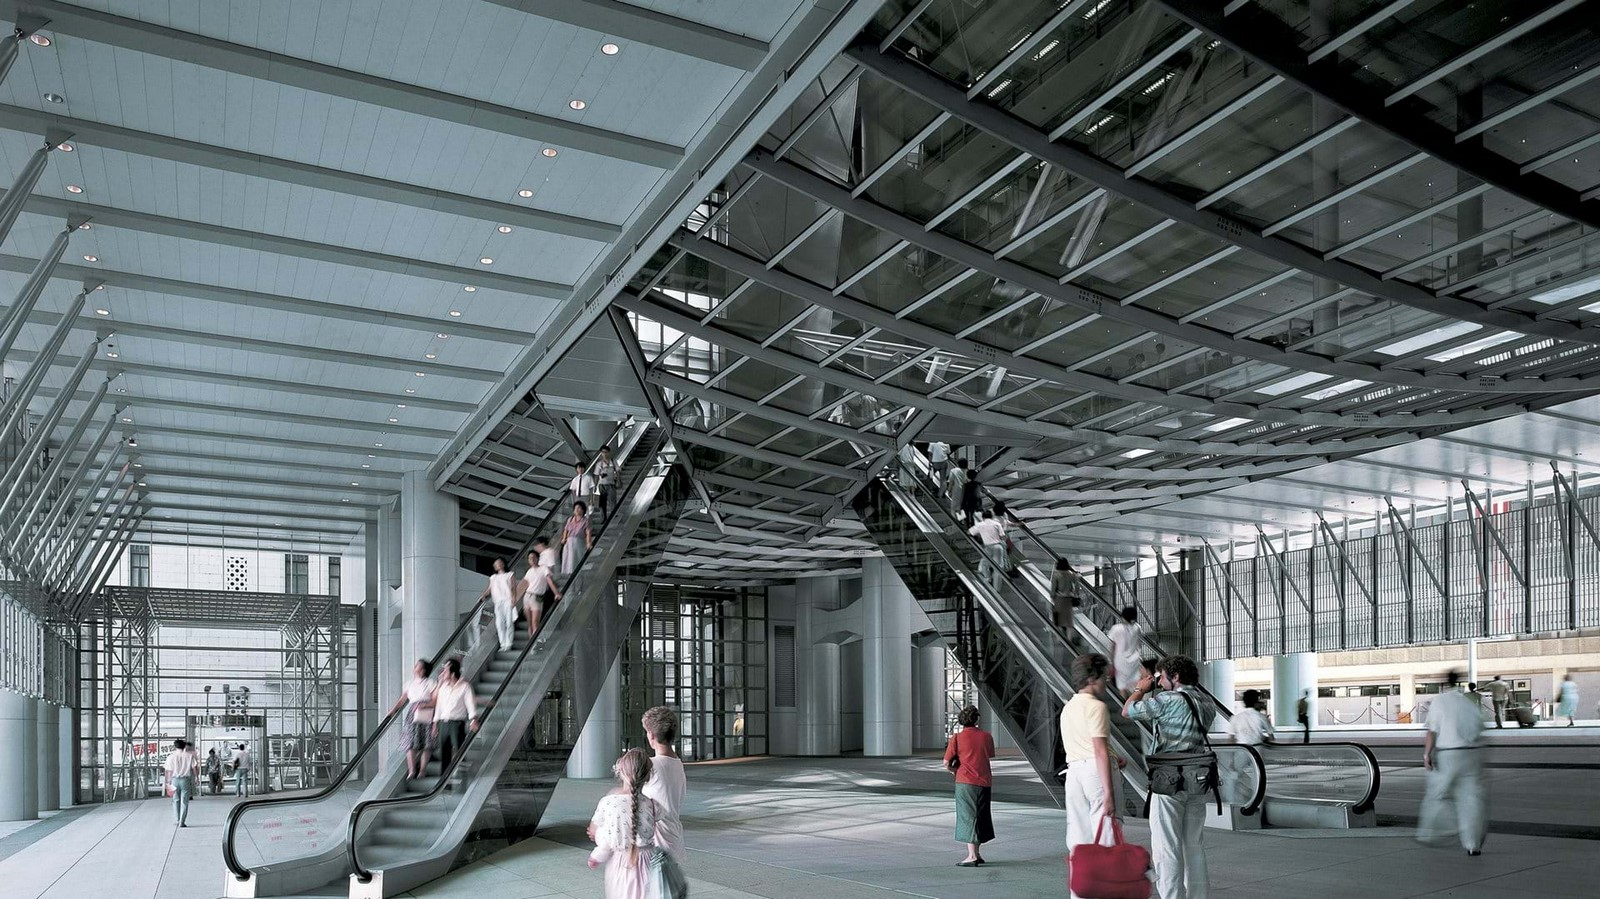 HSBC Building by Norman Foster: Missing internal support structure - Sheet11